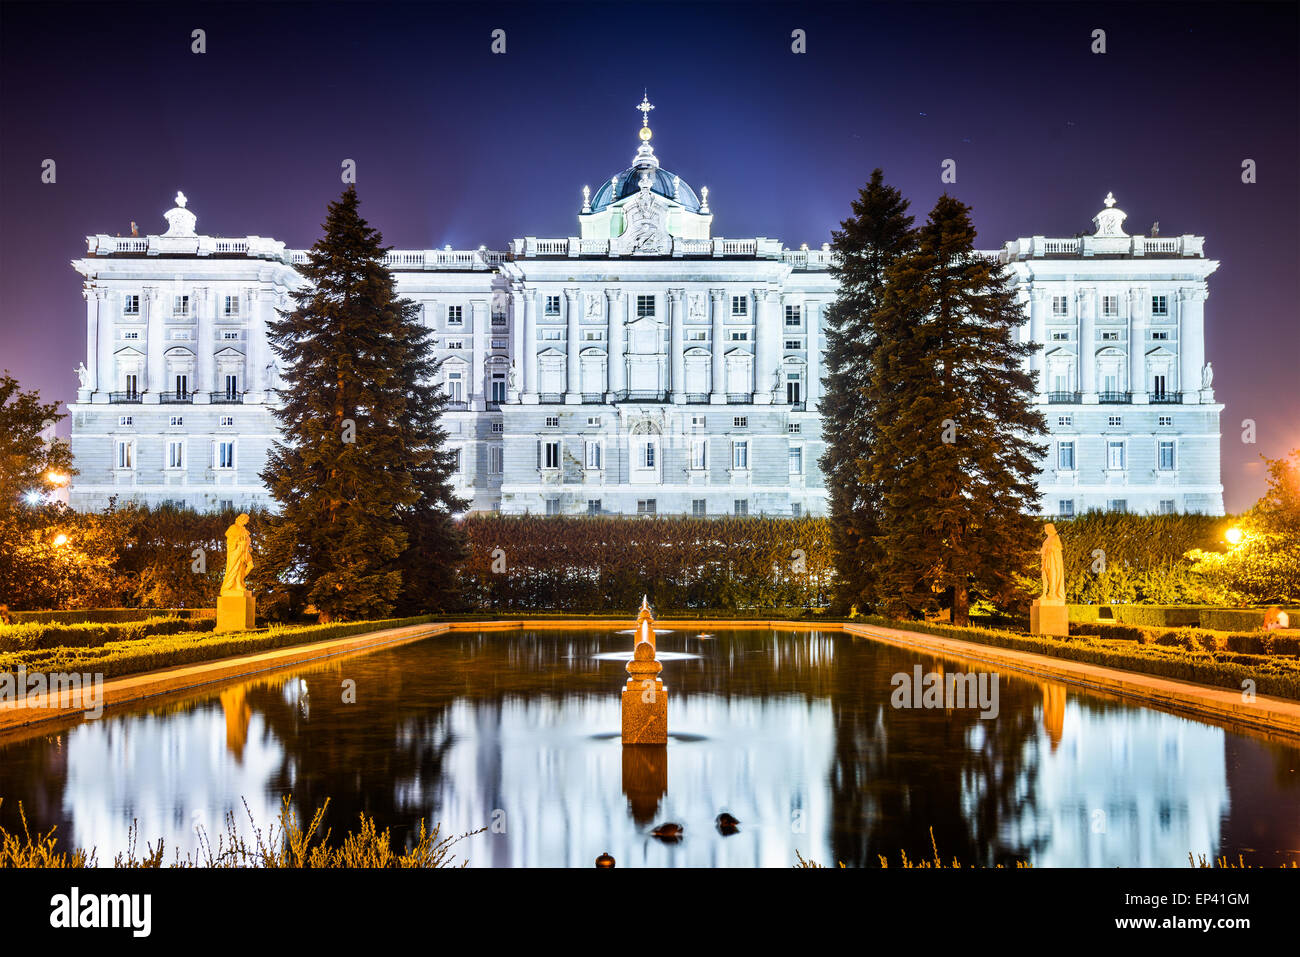 Madrid, Spain at the Royal Palace. - Stock Image